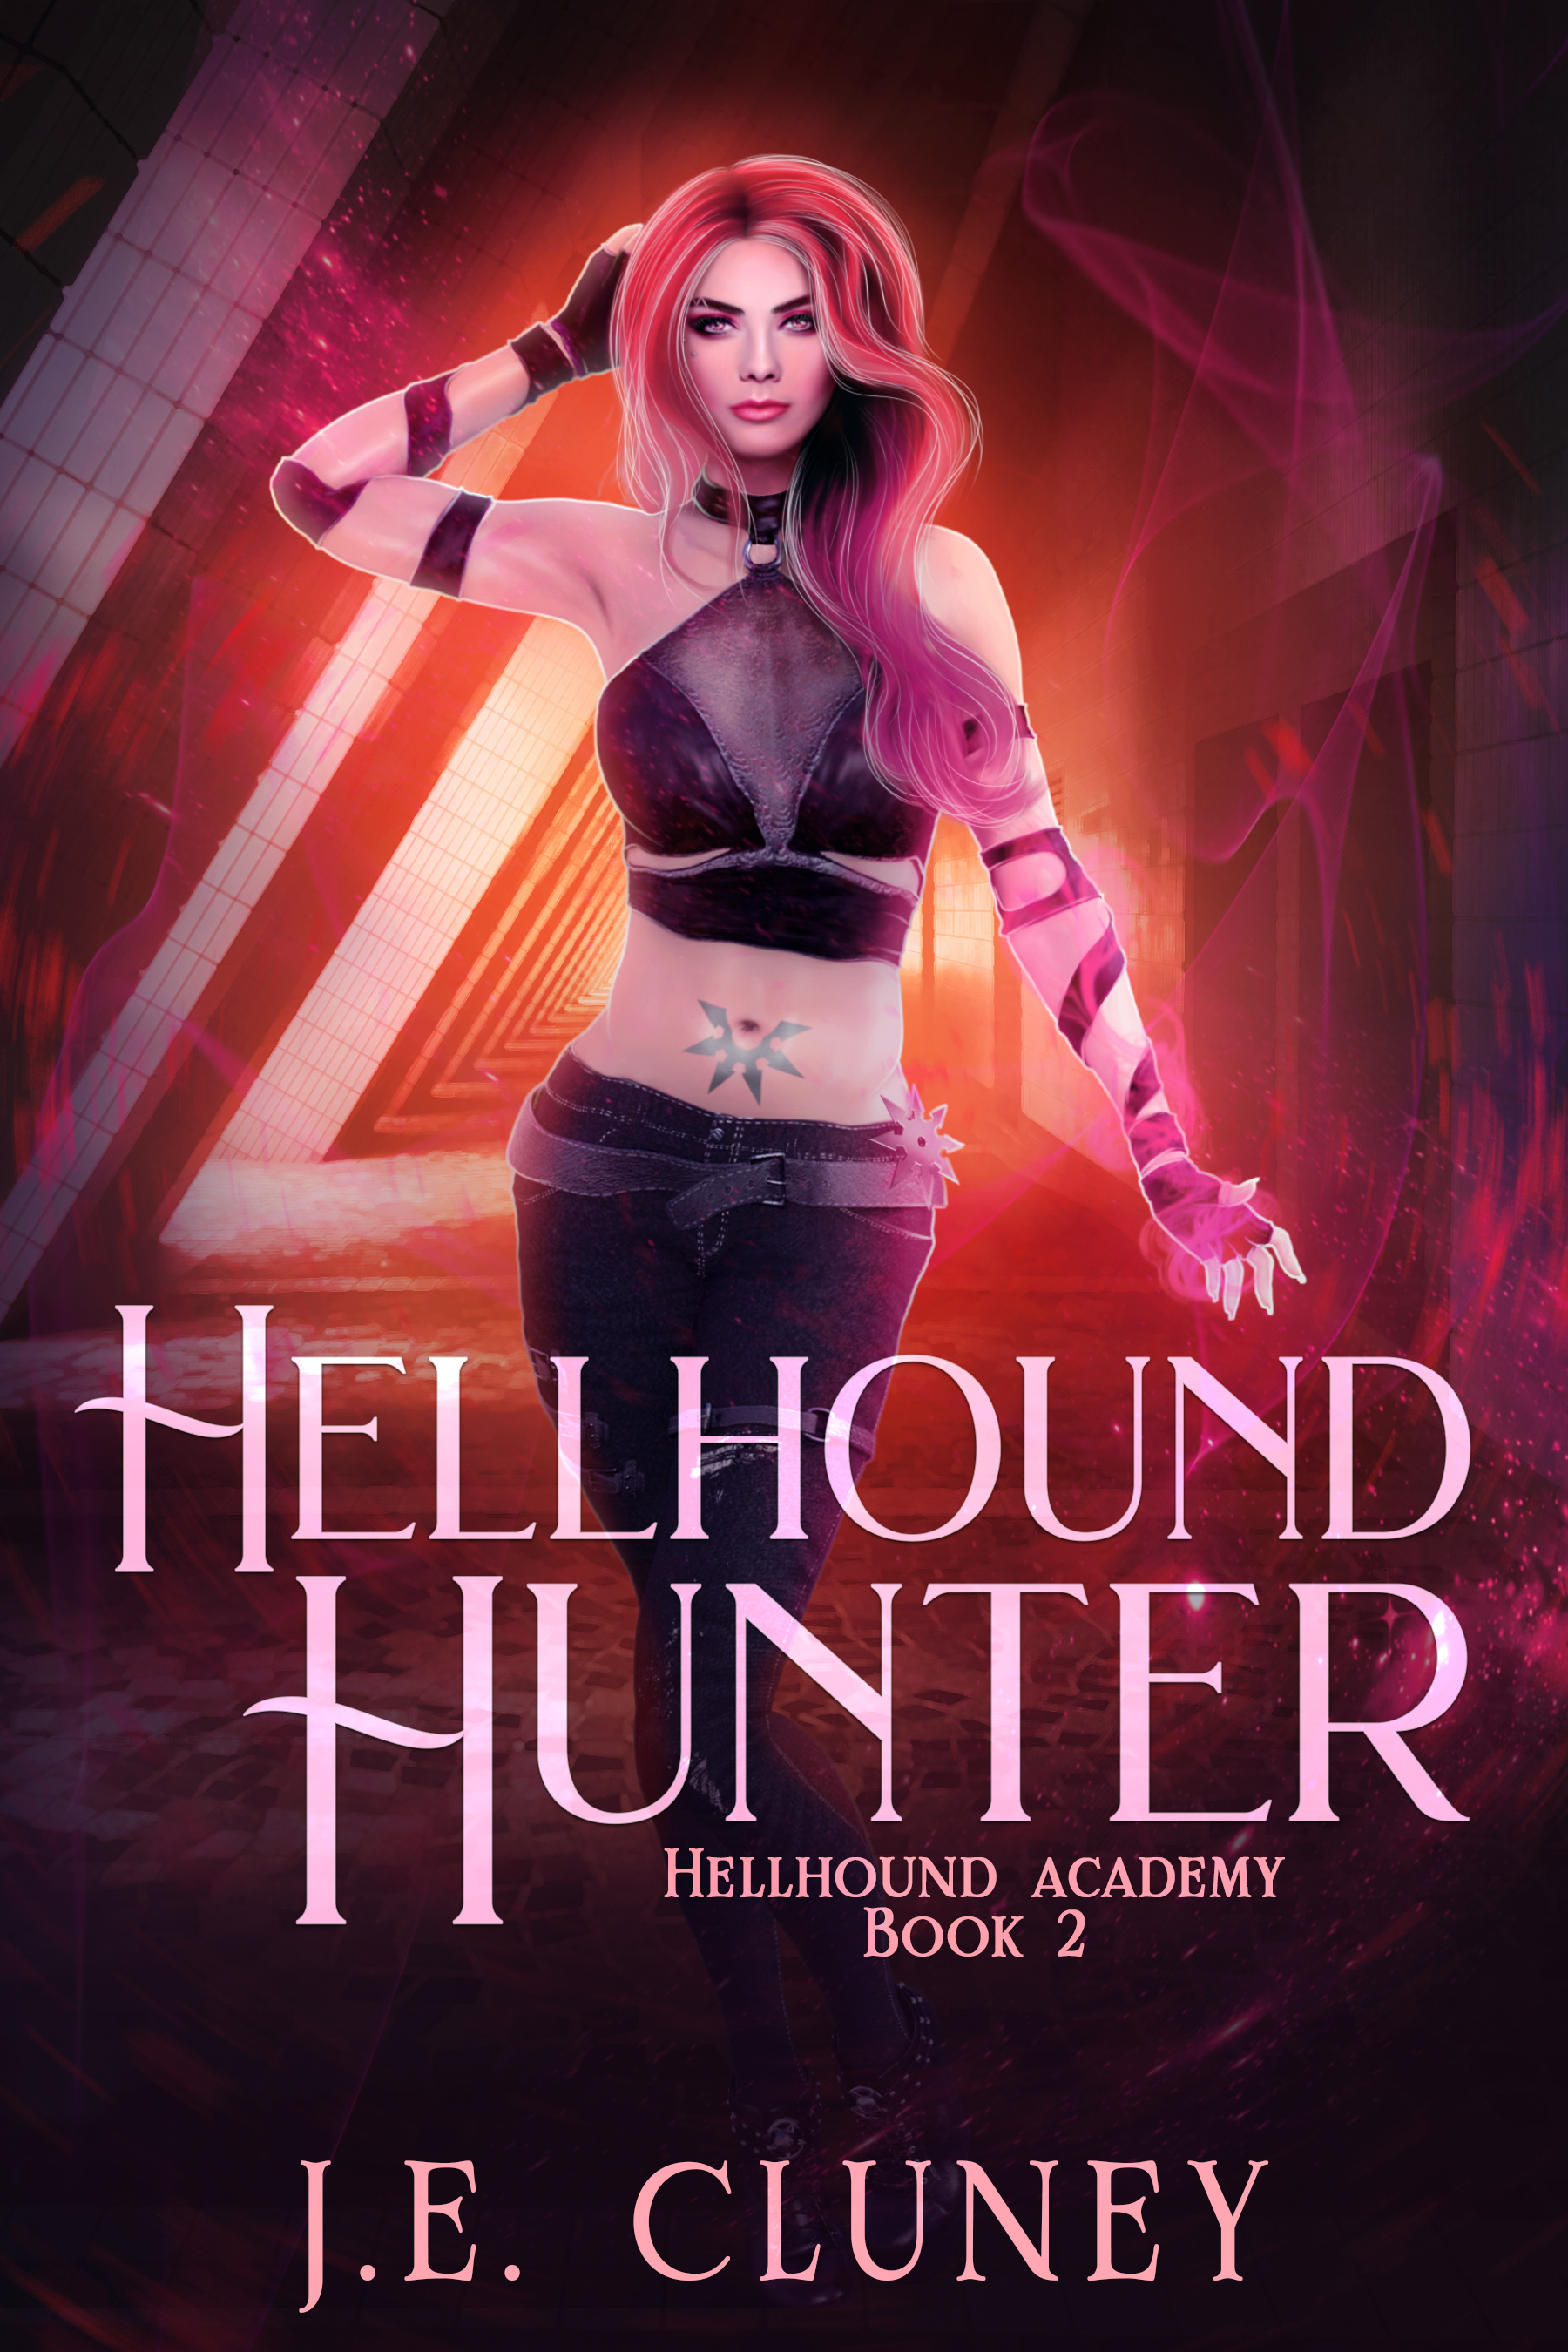 Hellhound Hunter